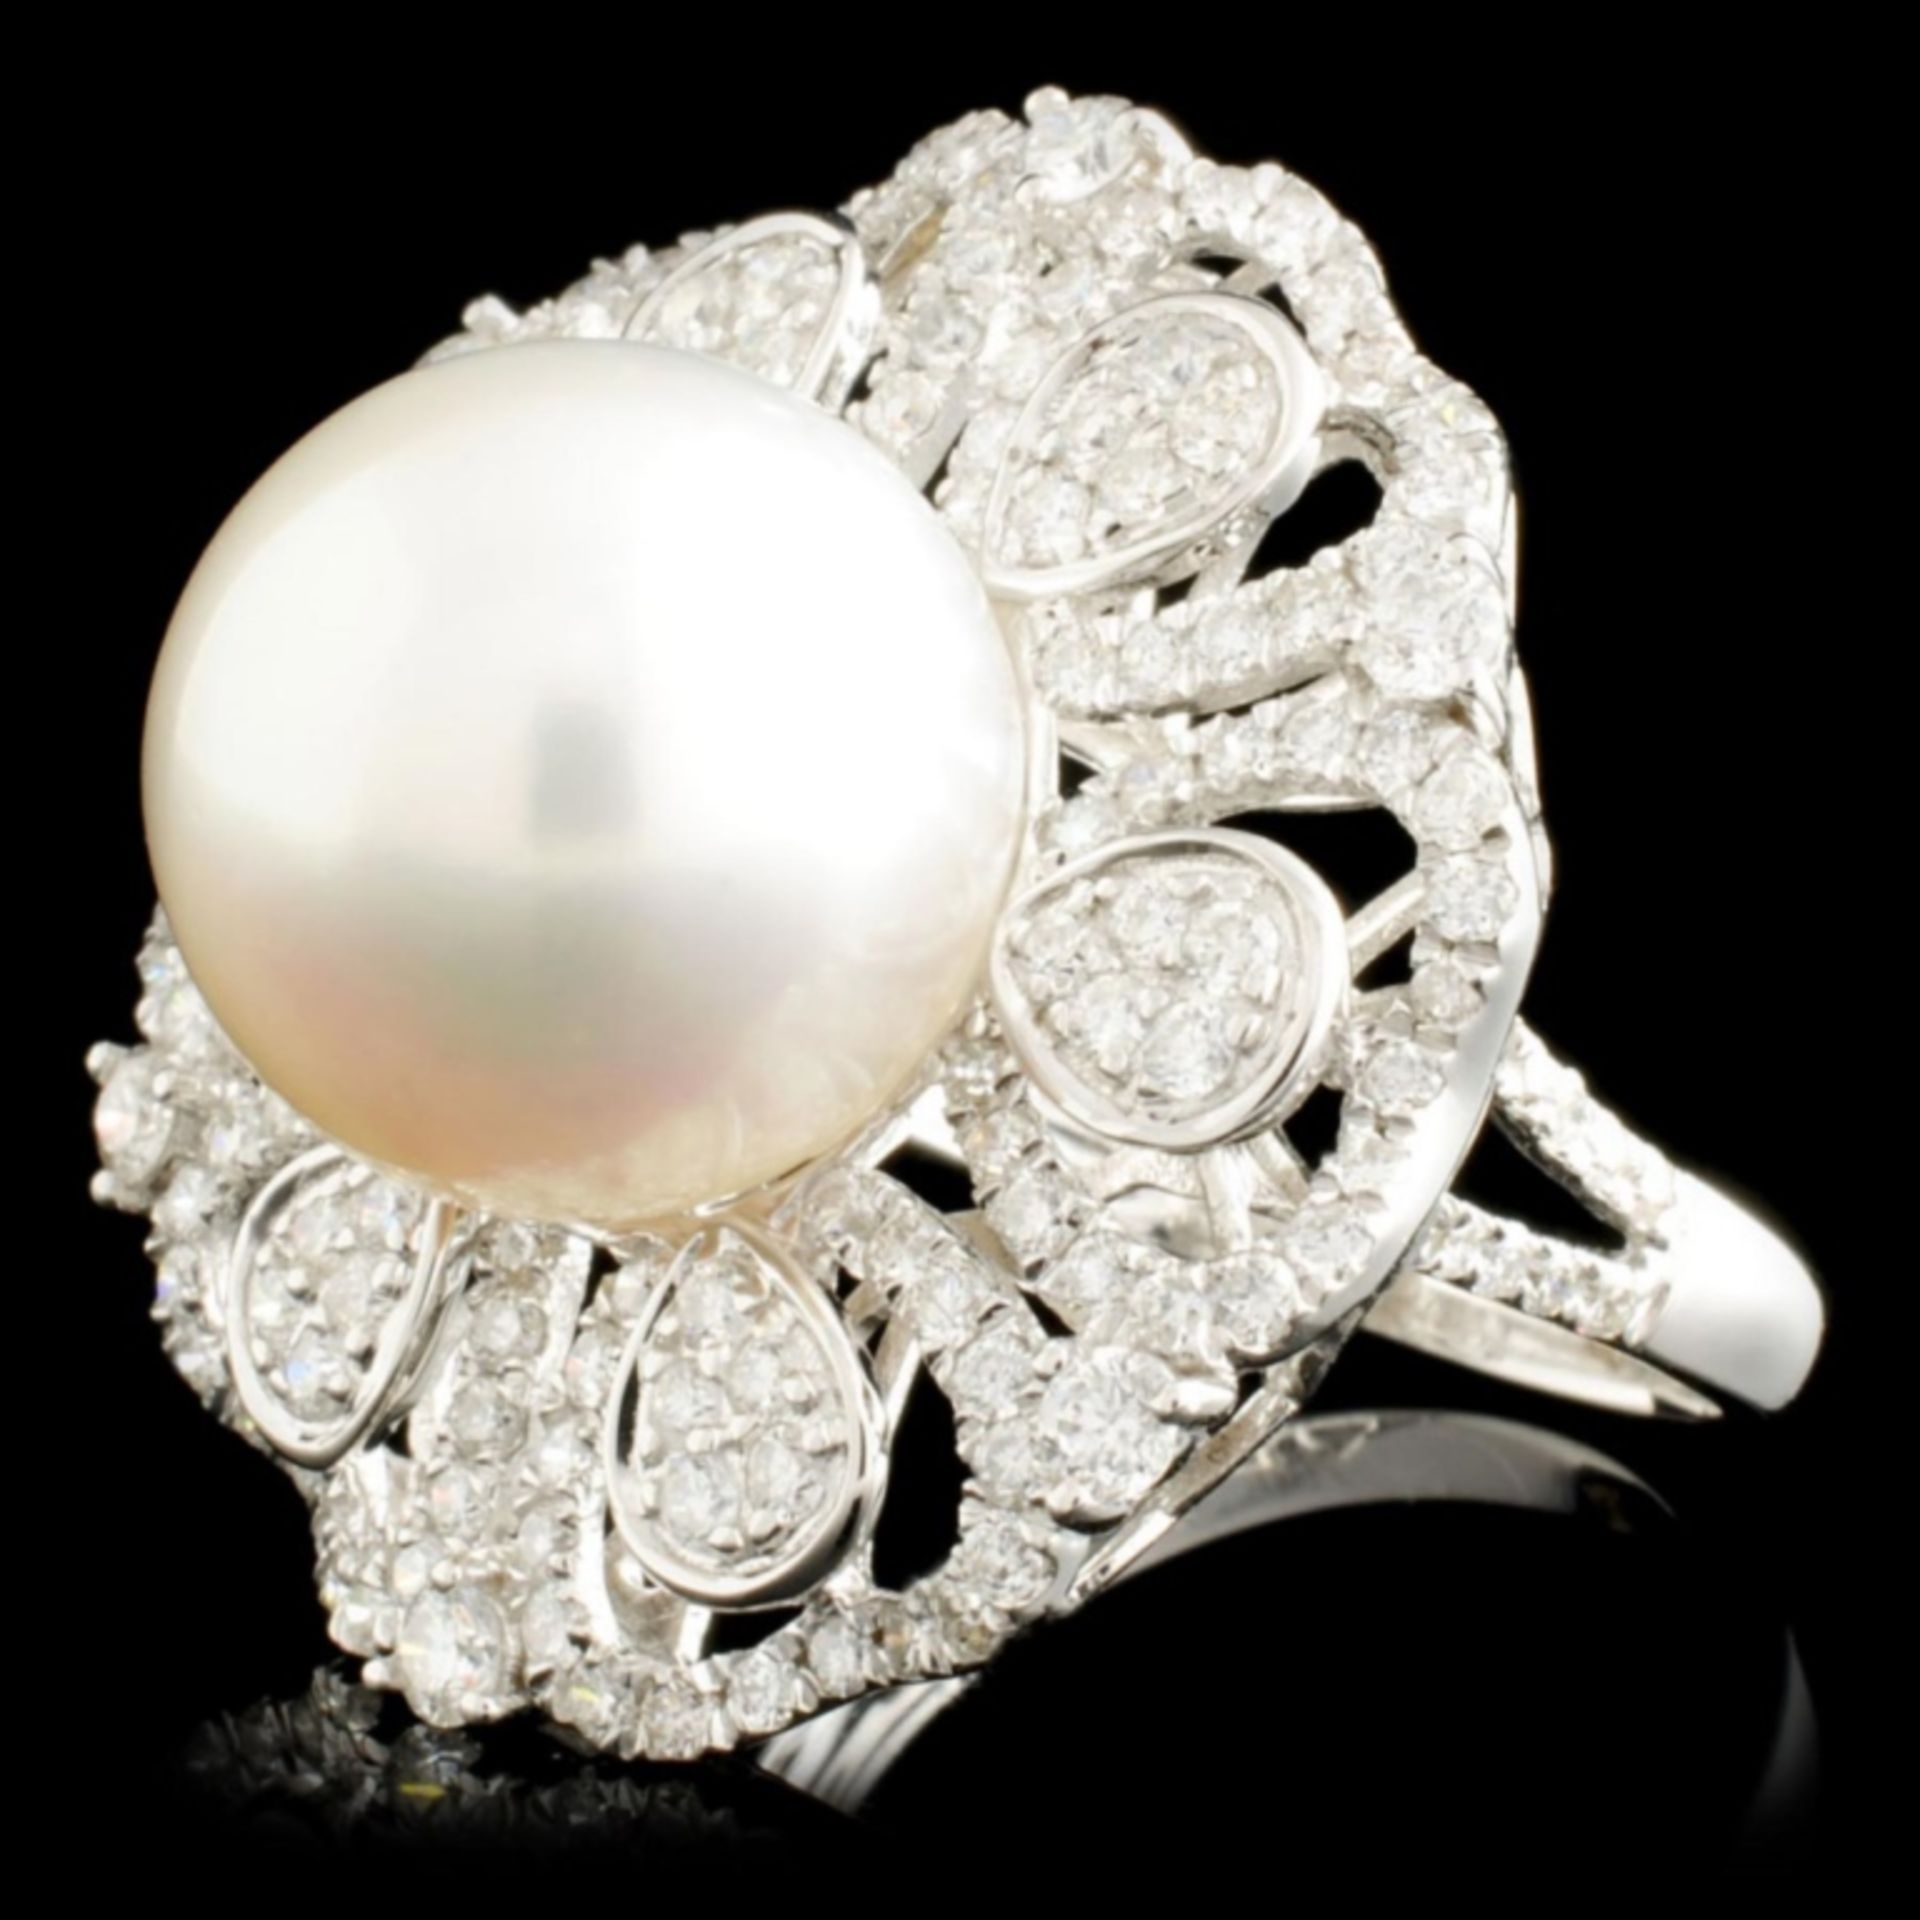 18K Gold 13MM Pearl & 1.61ctw Diamond Ring - Image 2 of 5